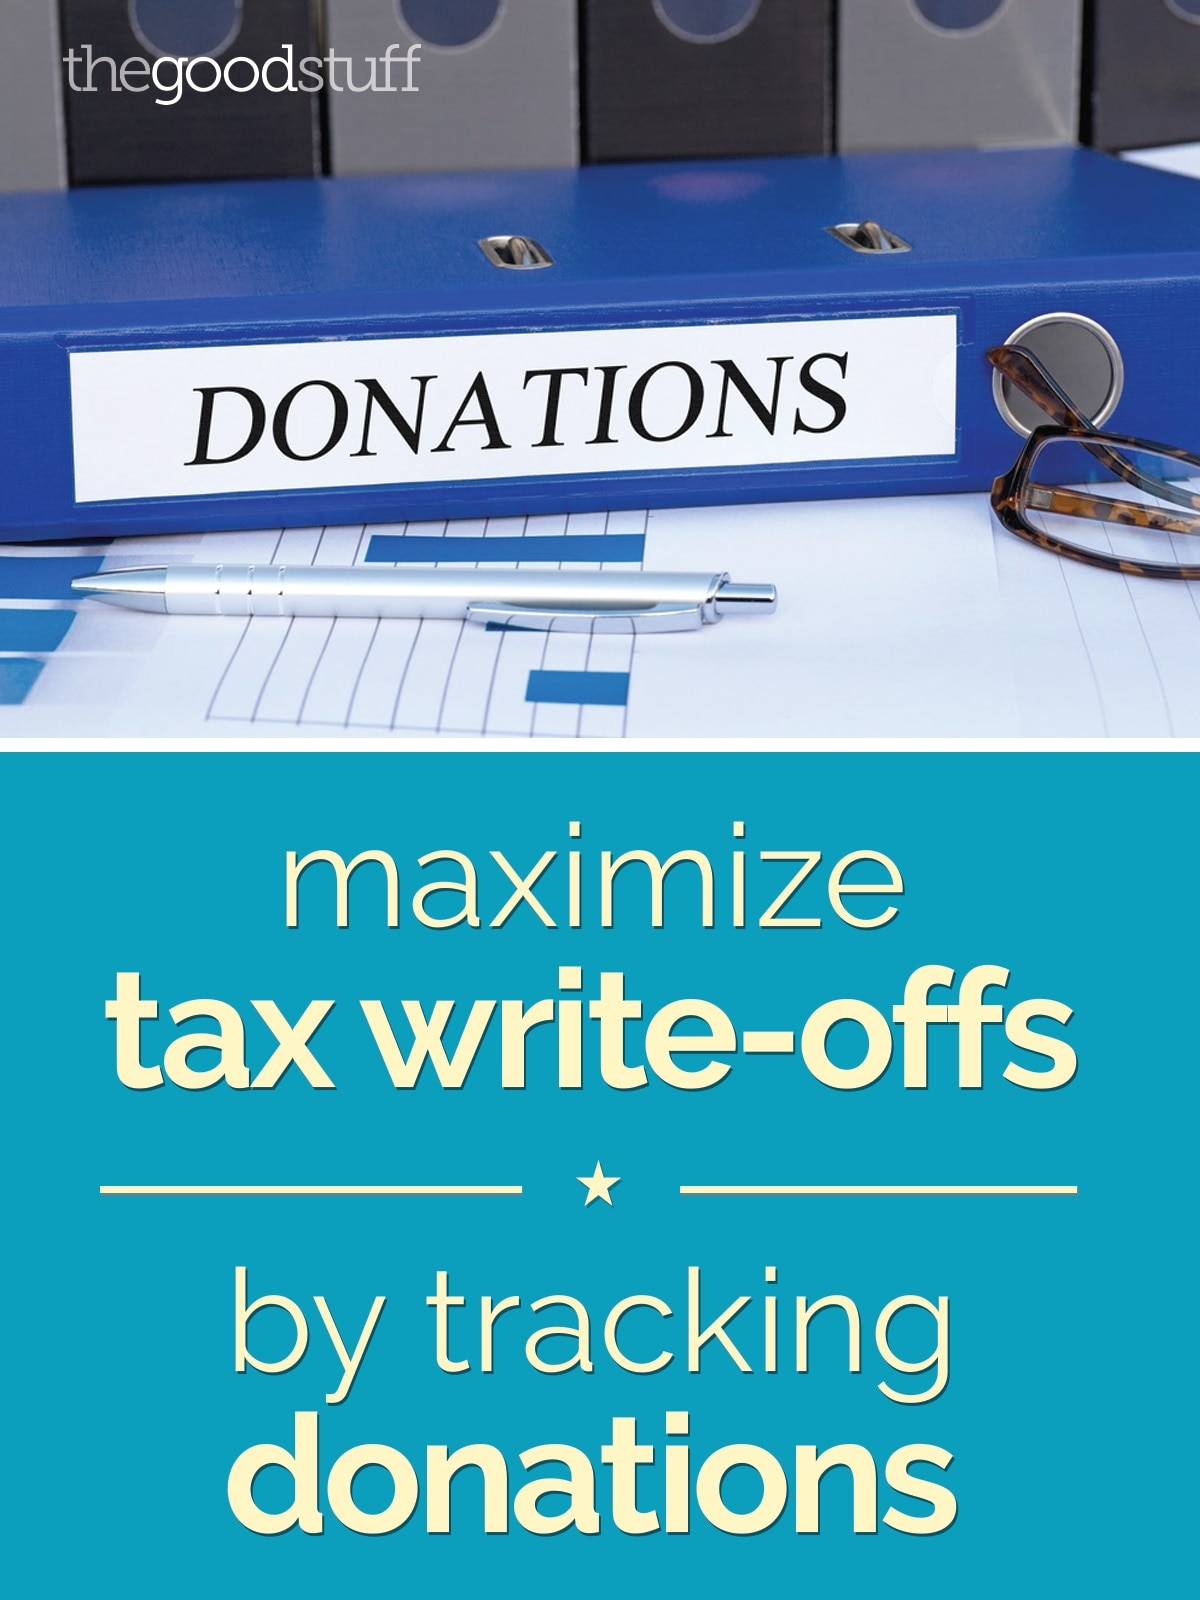 save-track-tax-write-off-donations